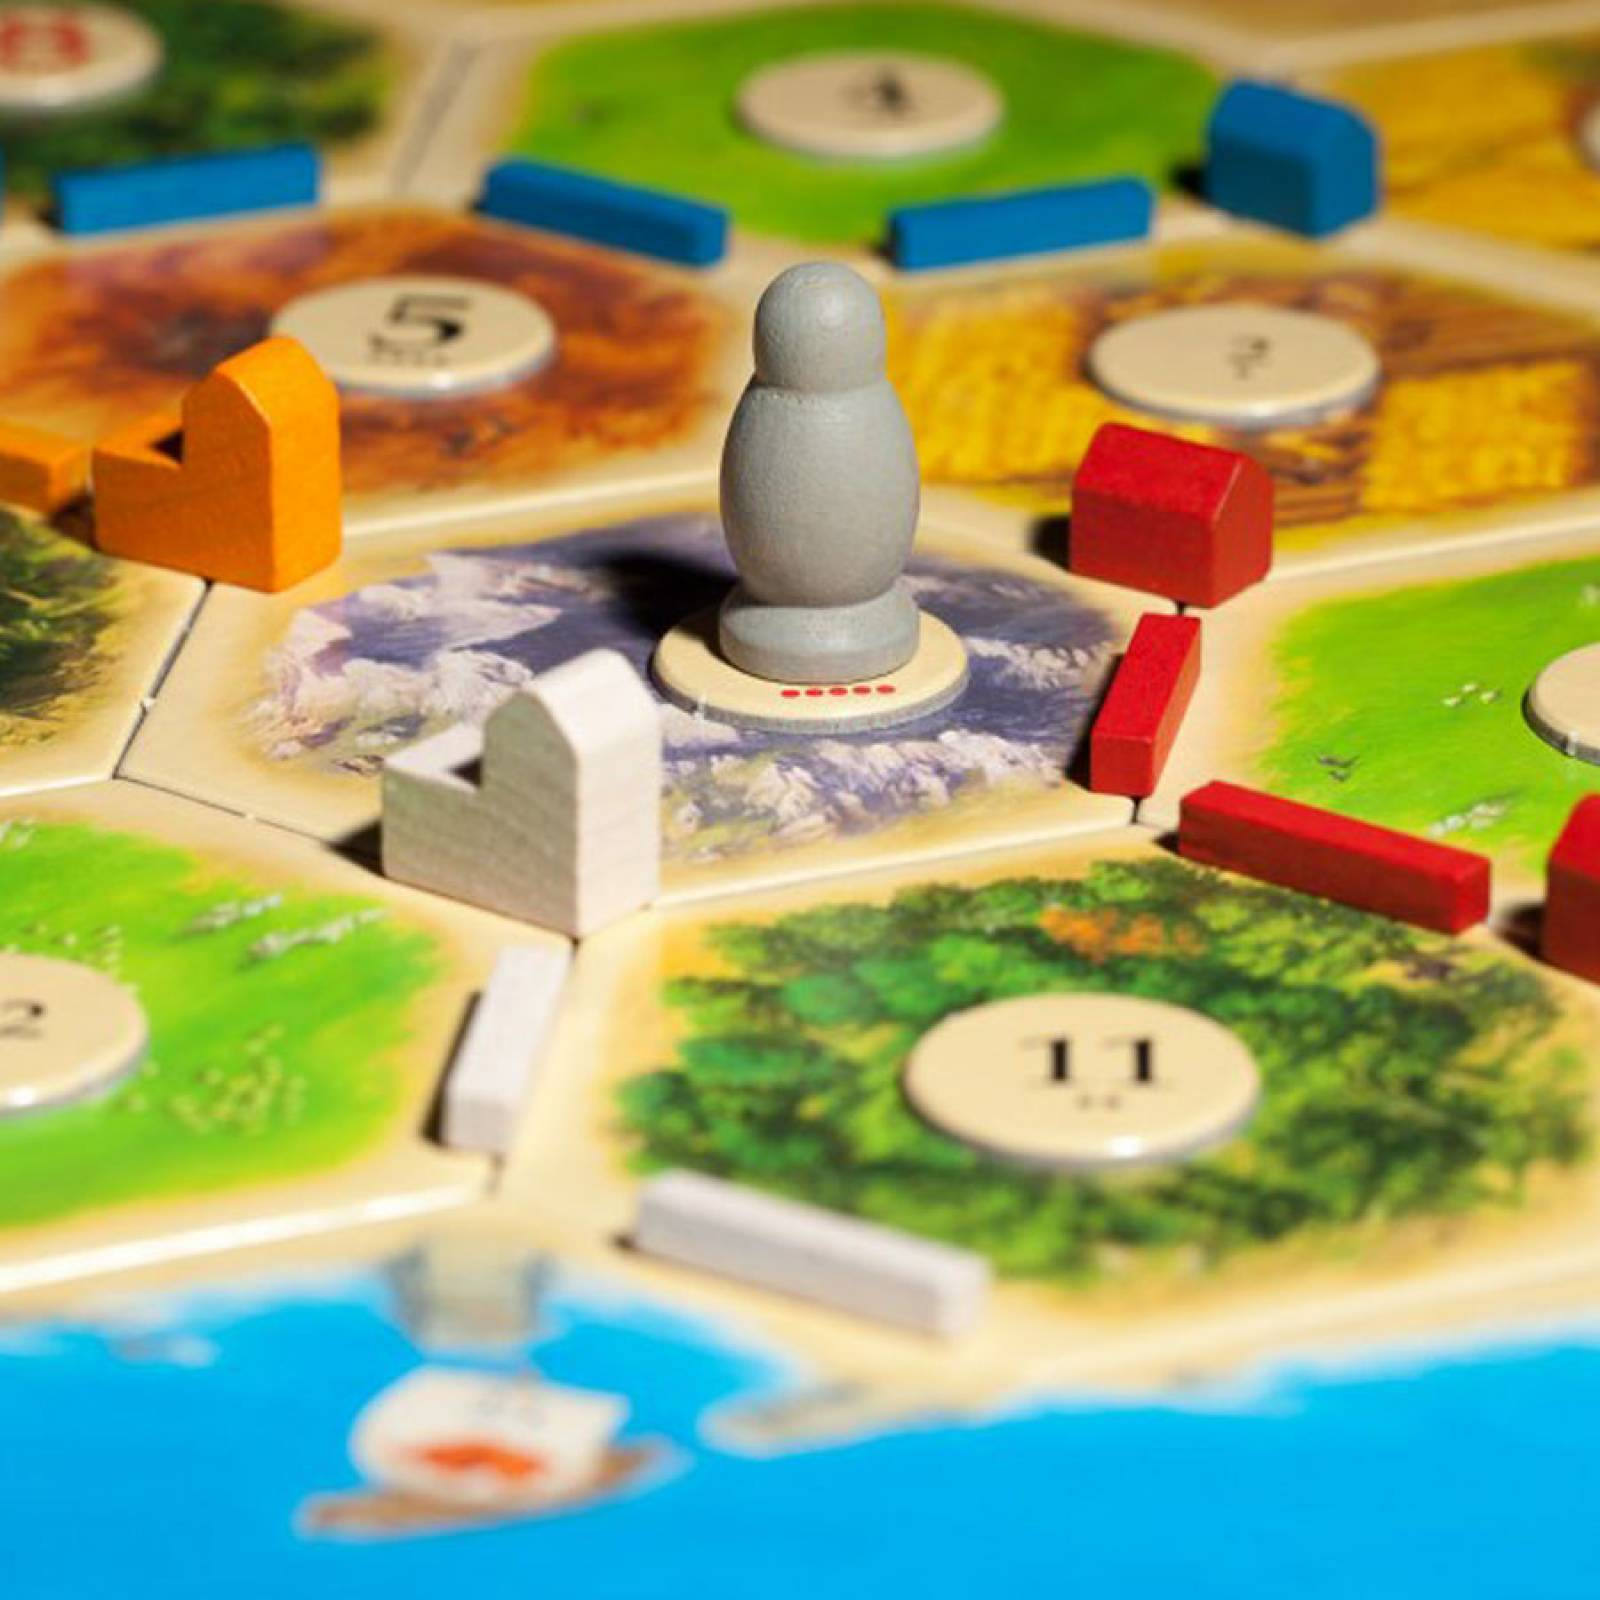 Catan Game - Trade Build Settle 10+ by Klaus Tuber thumbnails